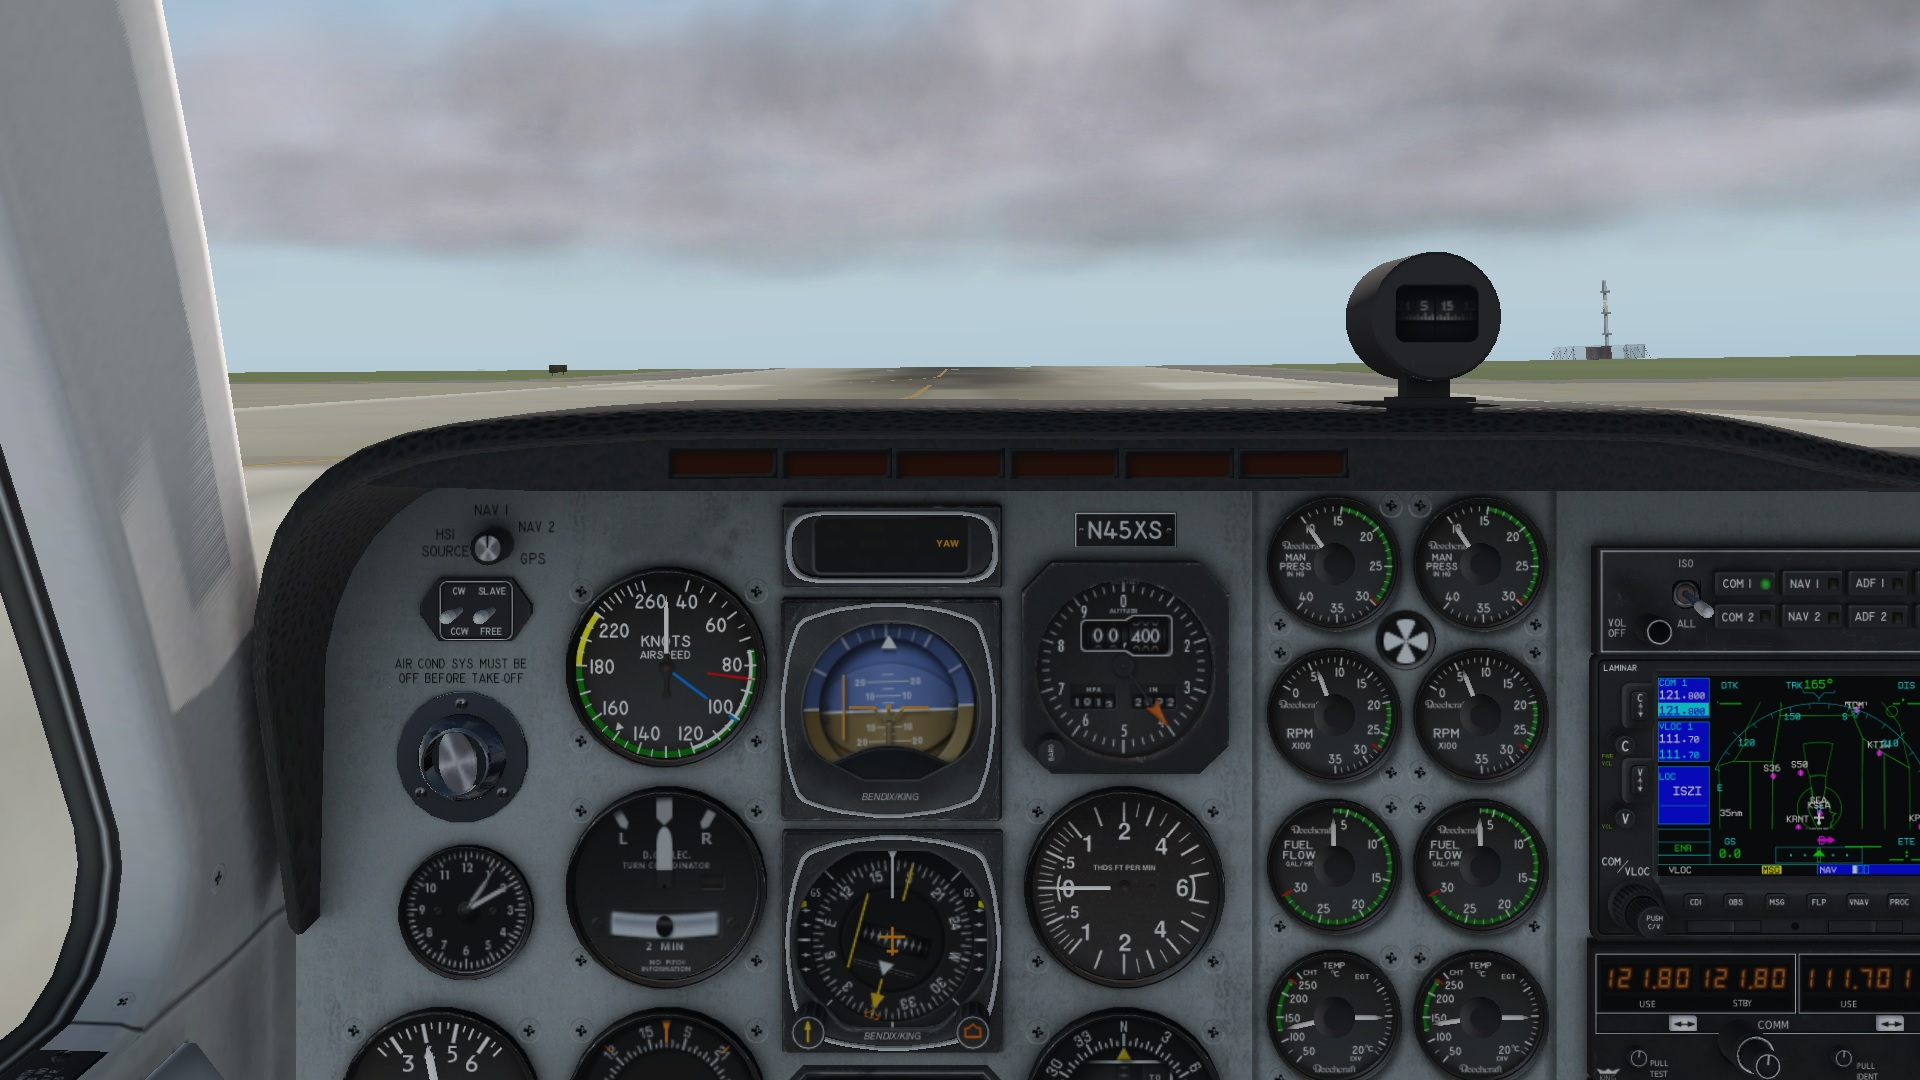 X-Plane 11 Multi View and 3D Cockpit | Fly Elise-ng